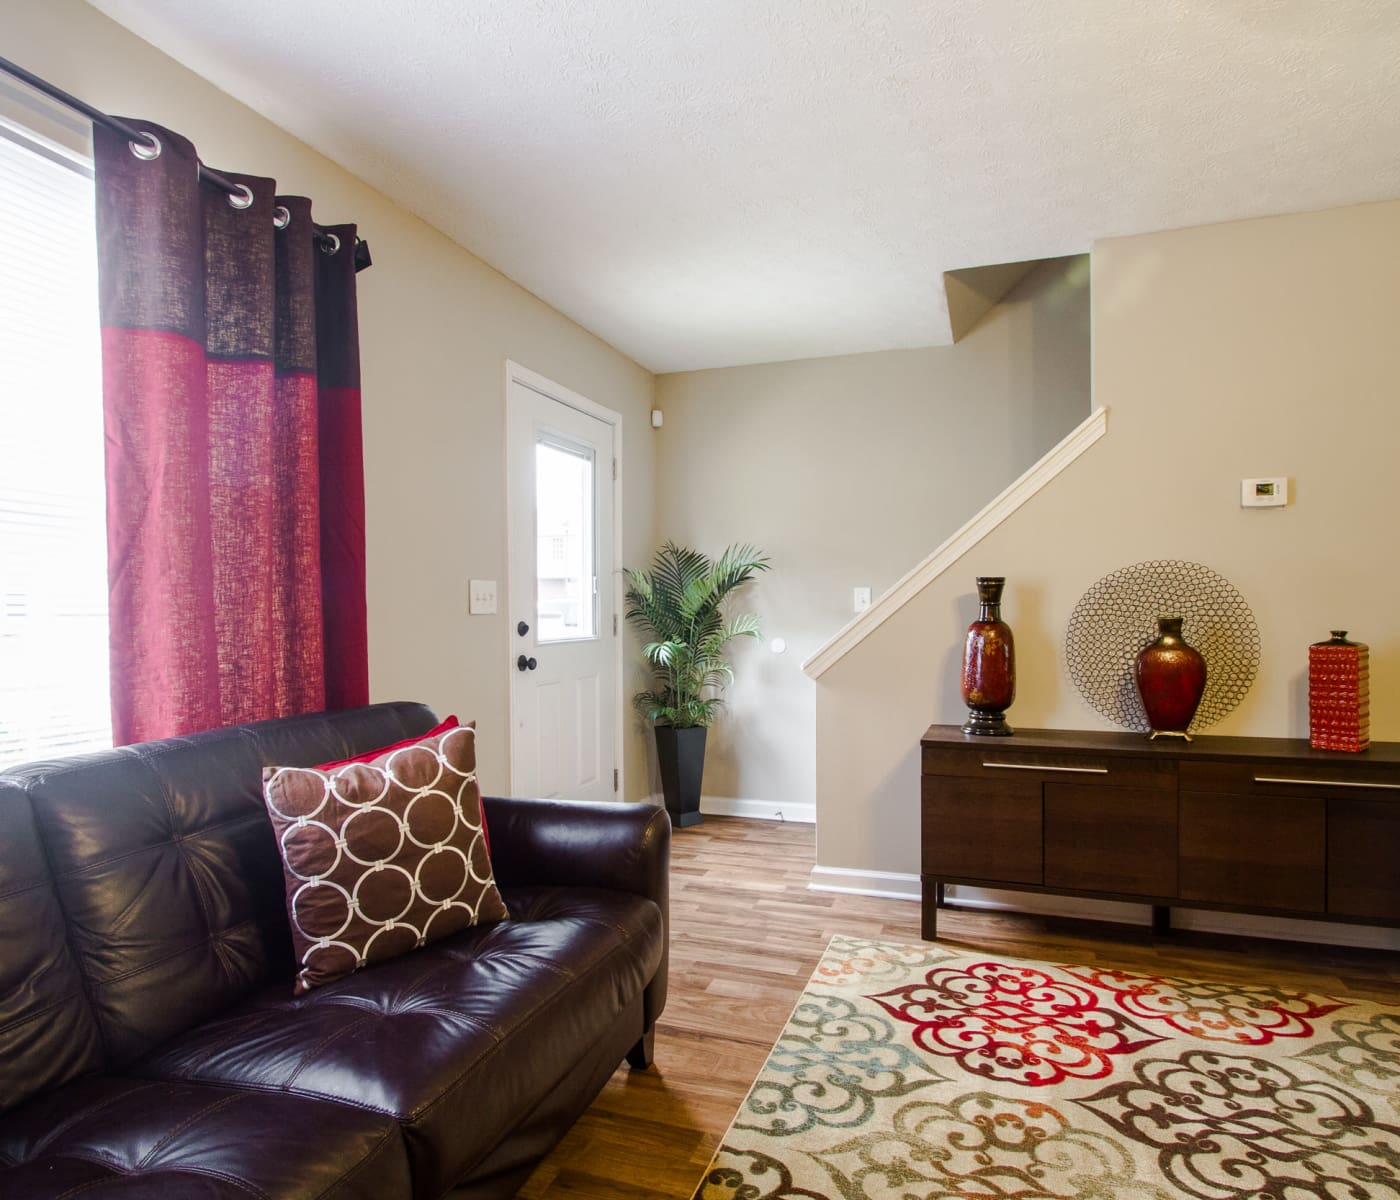 Living room at Mount Olive Townhomes in Commerce